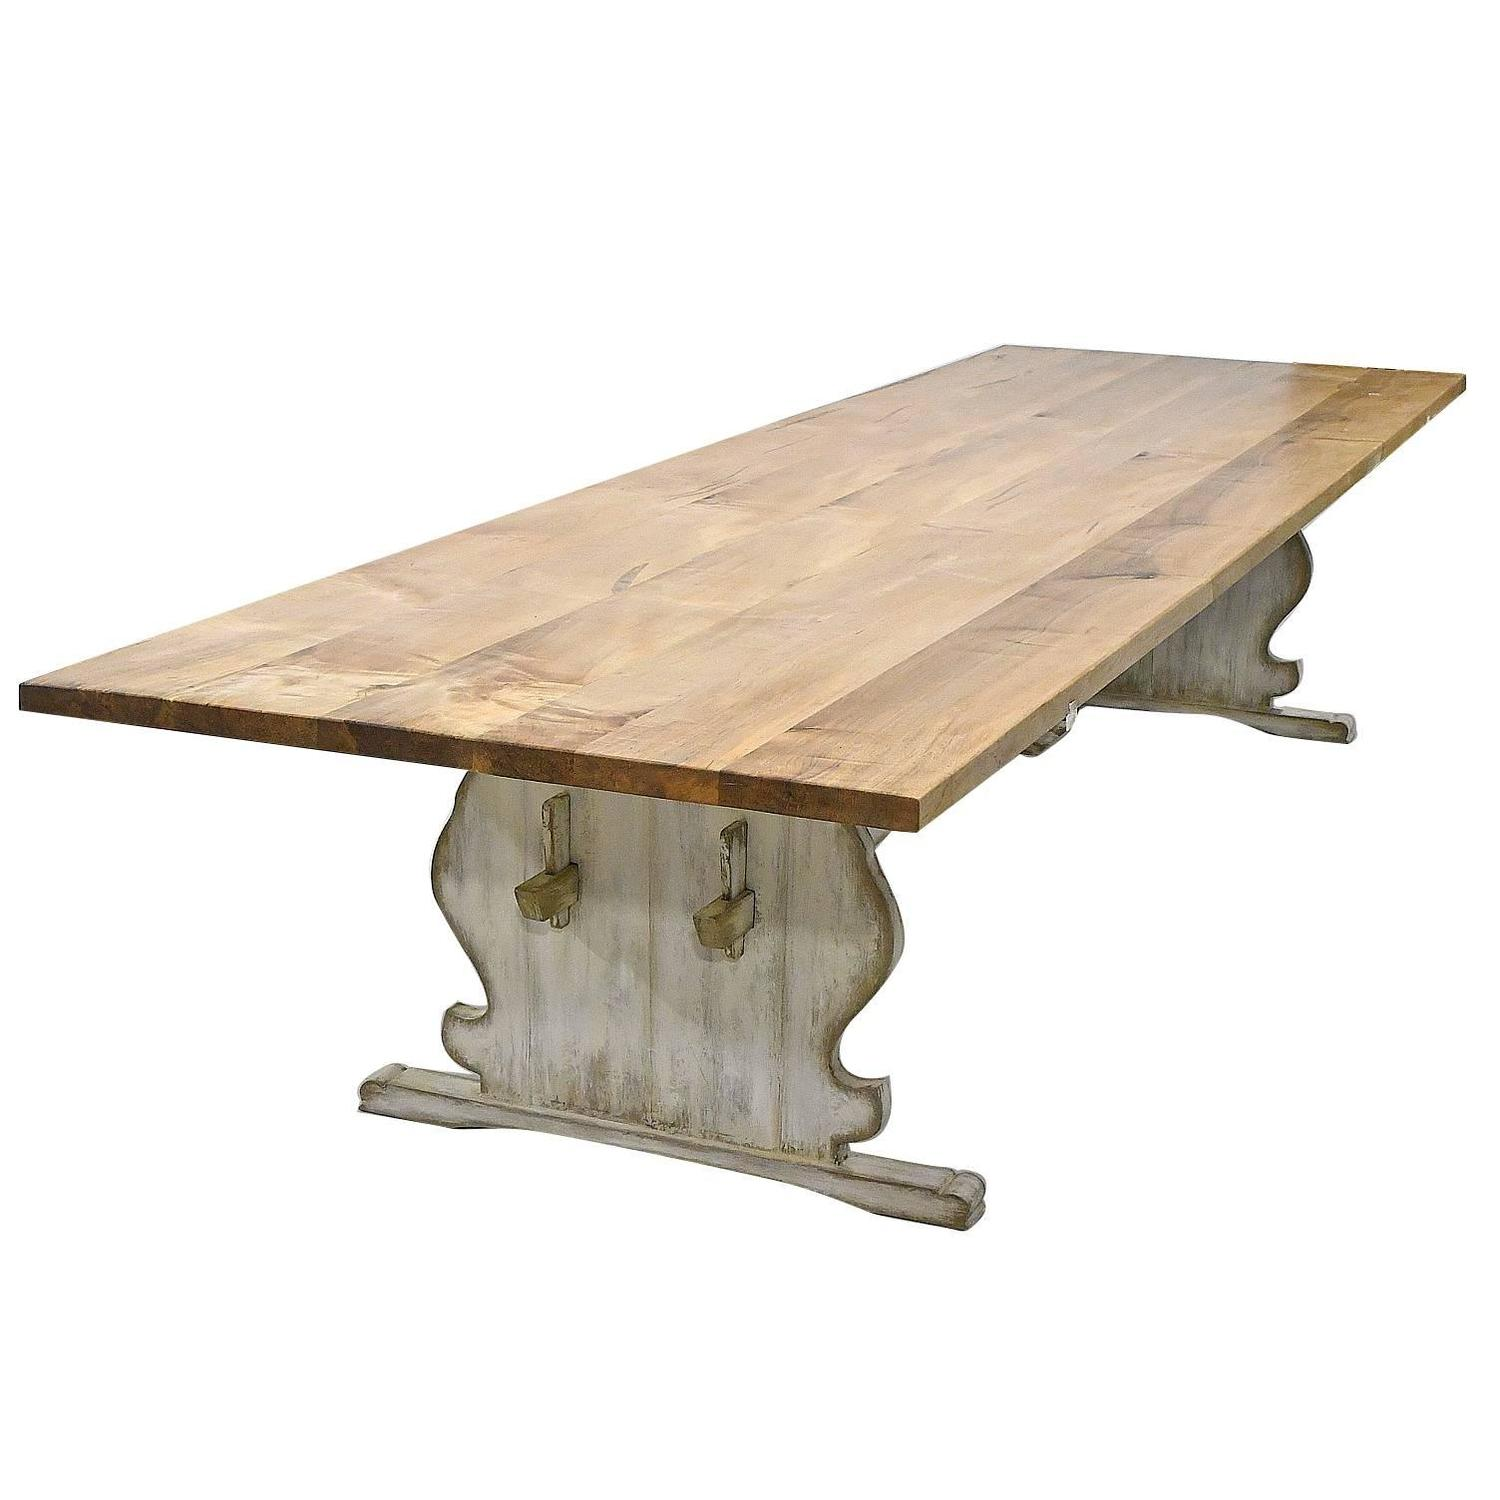 Long Dining Tables For Sale: 12' Long Gustavian Dining Table With Painted Trestle Base